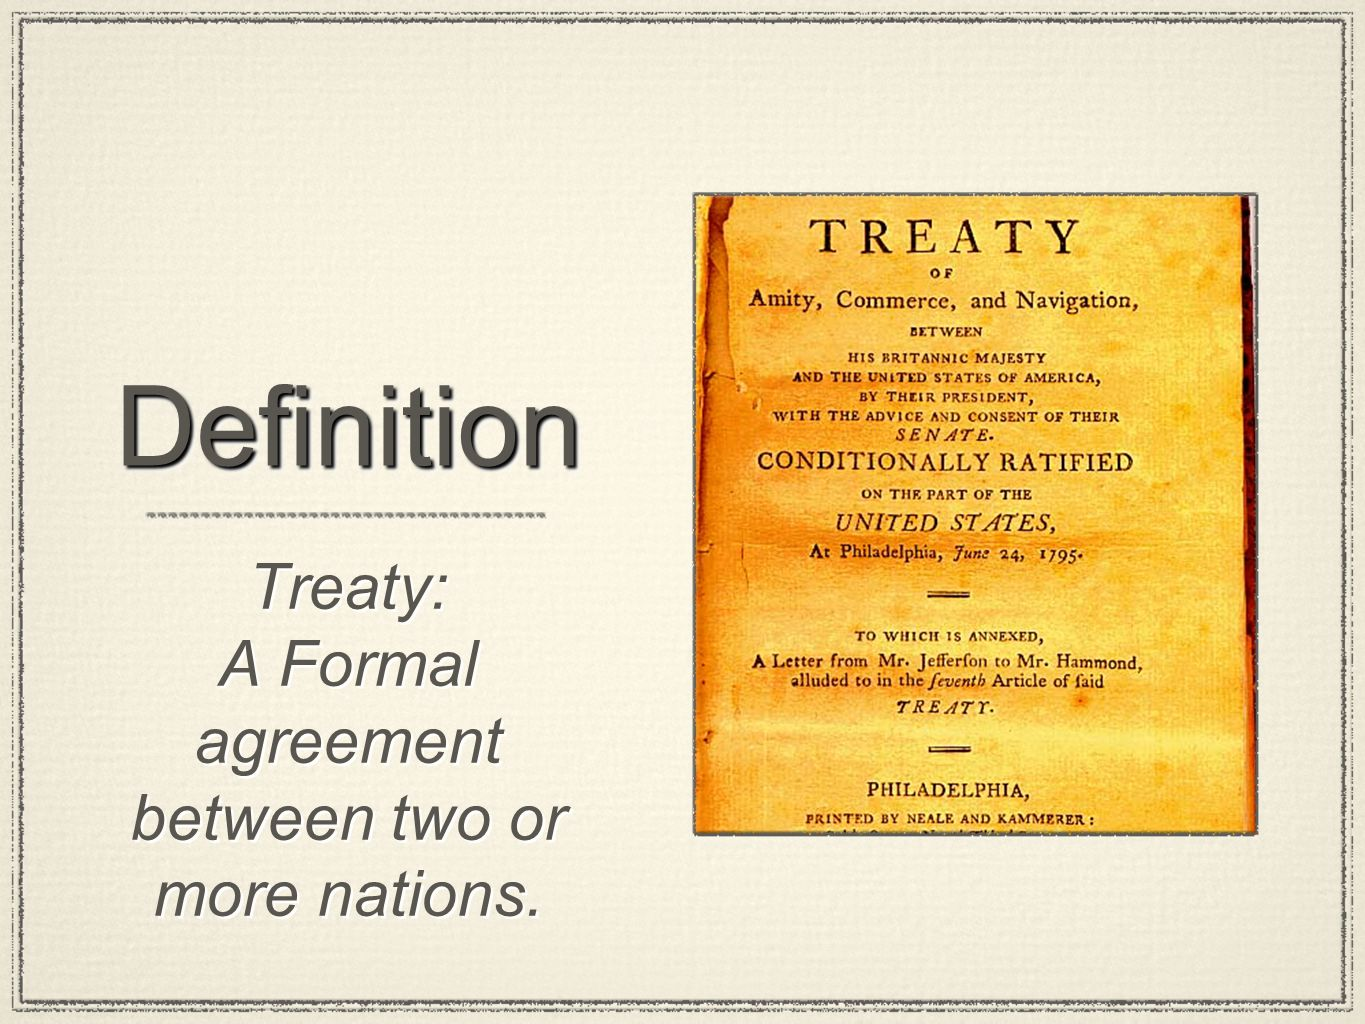 DefinitionDefinition Treaty: A Formal agreement between two or more nations. Treaty: A Formal agreement between two or more nations.